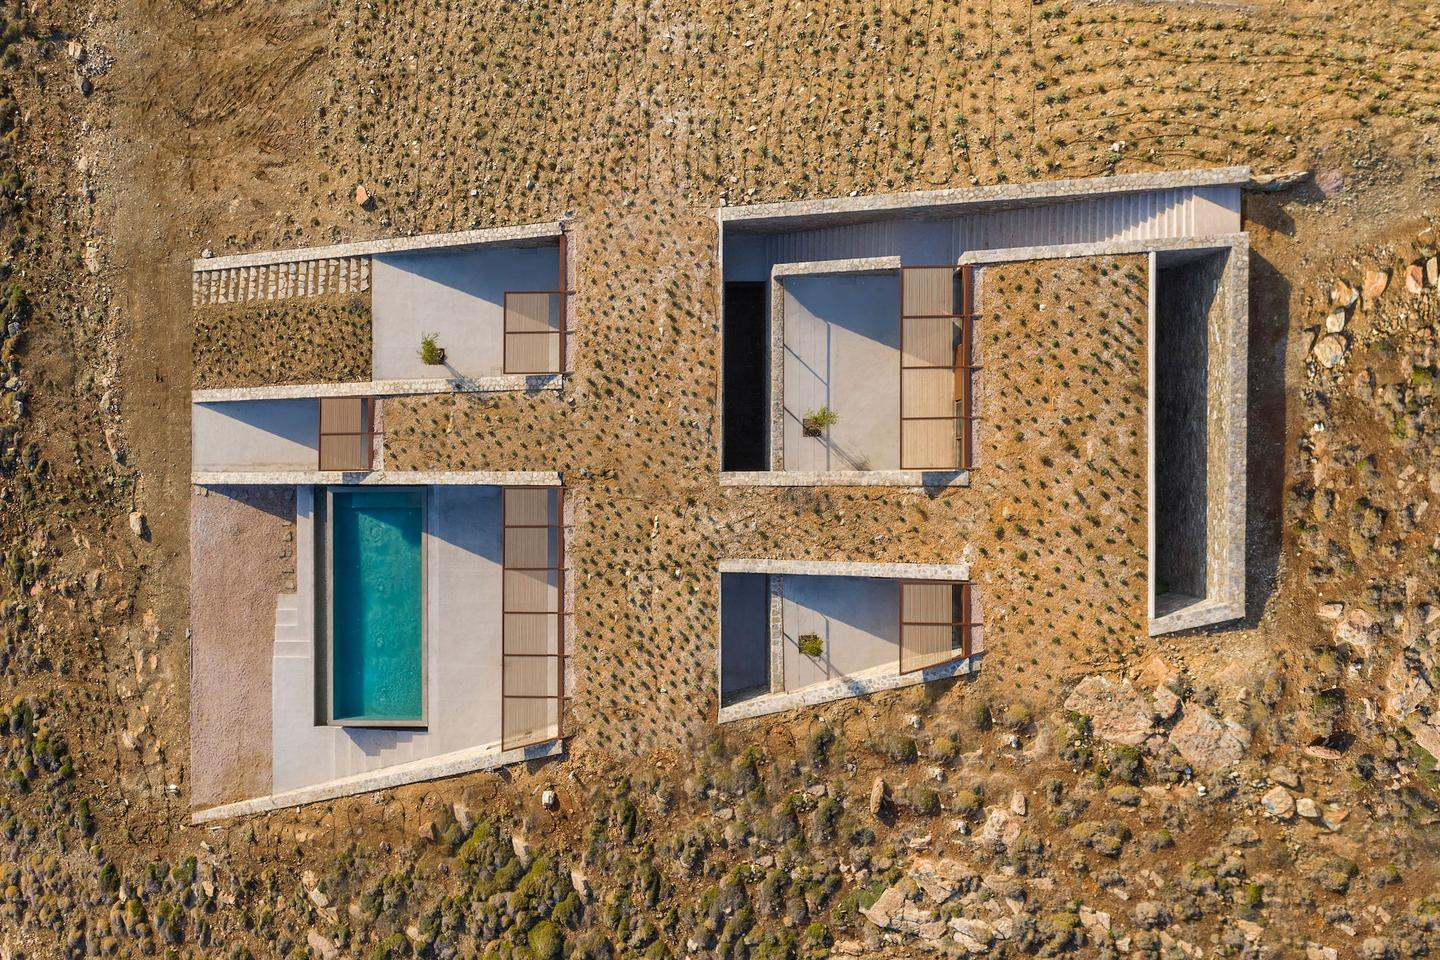 The NCaved house, by Mold Architects, takes its place remarkably well among the rugged shoreline on Greece's Serifos island